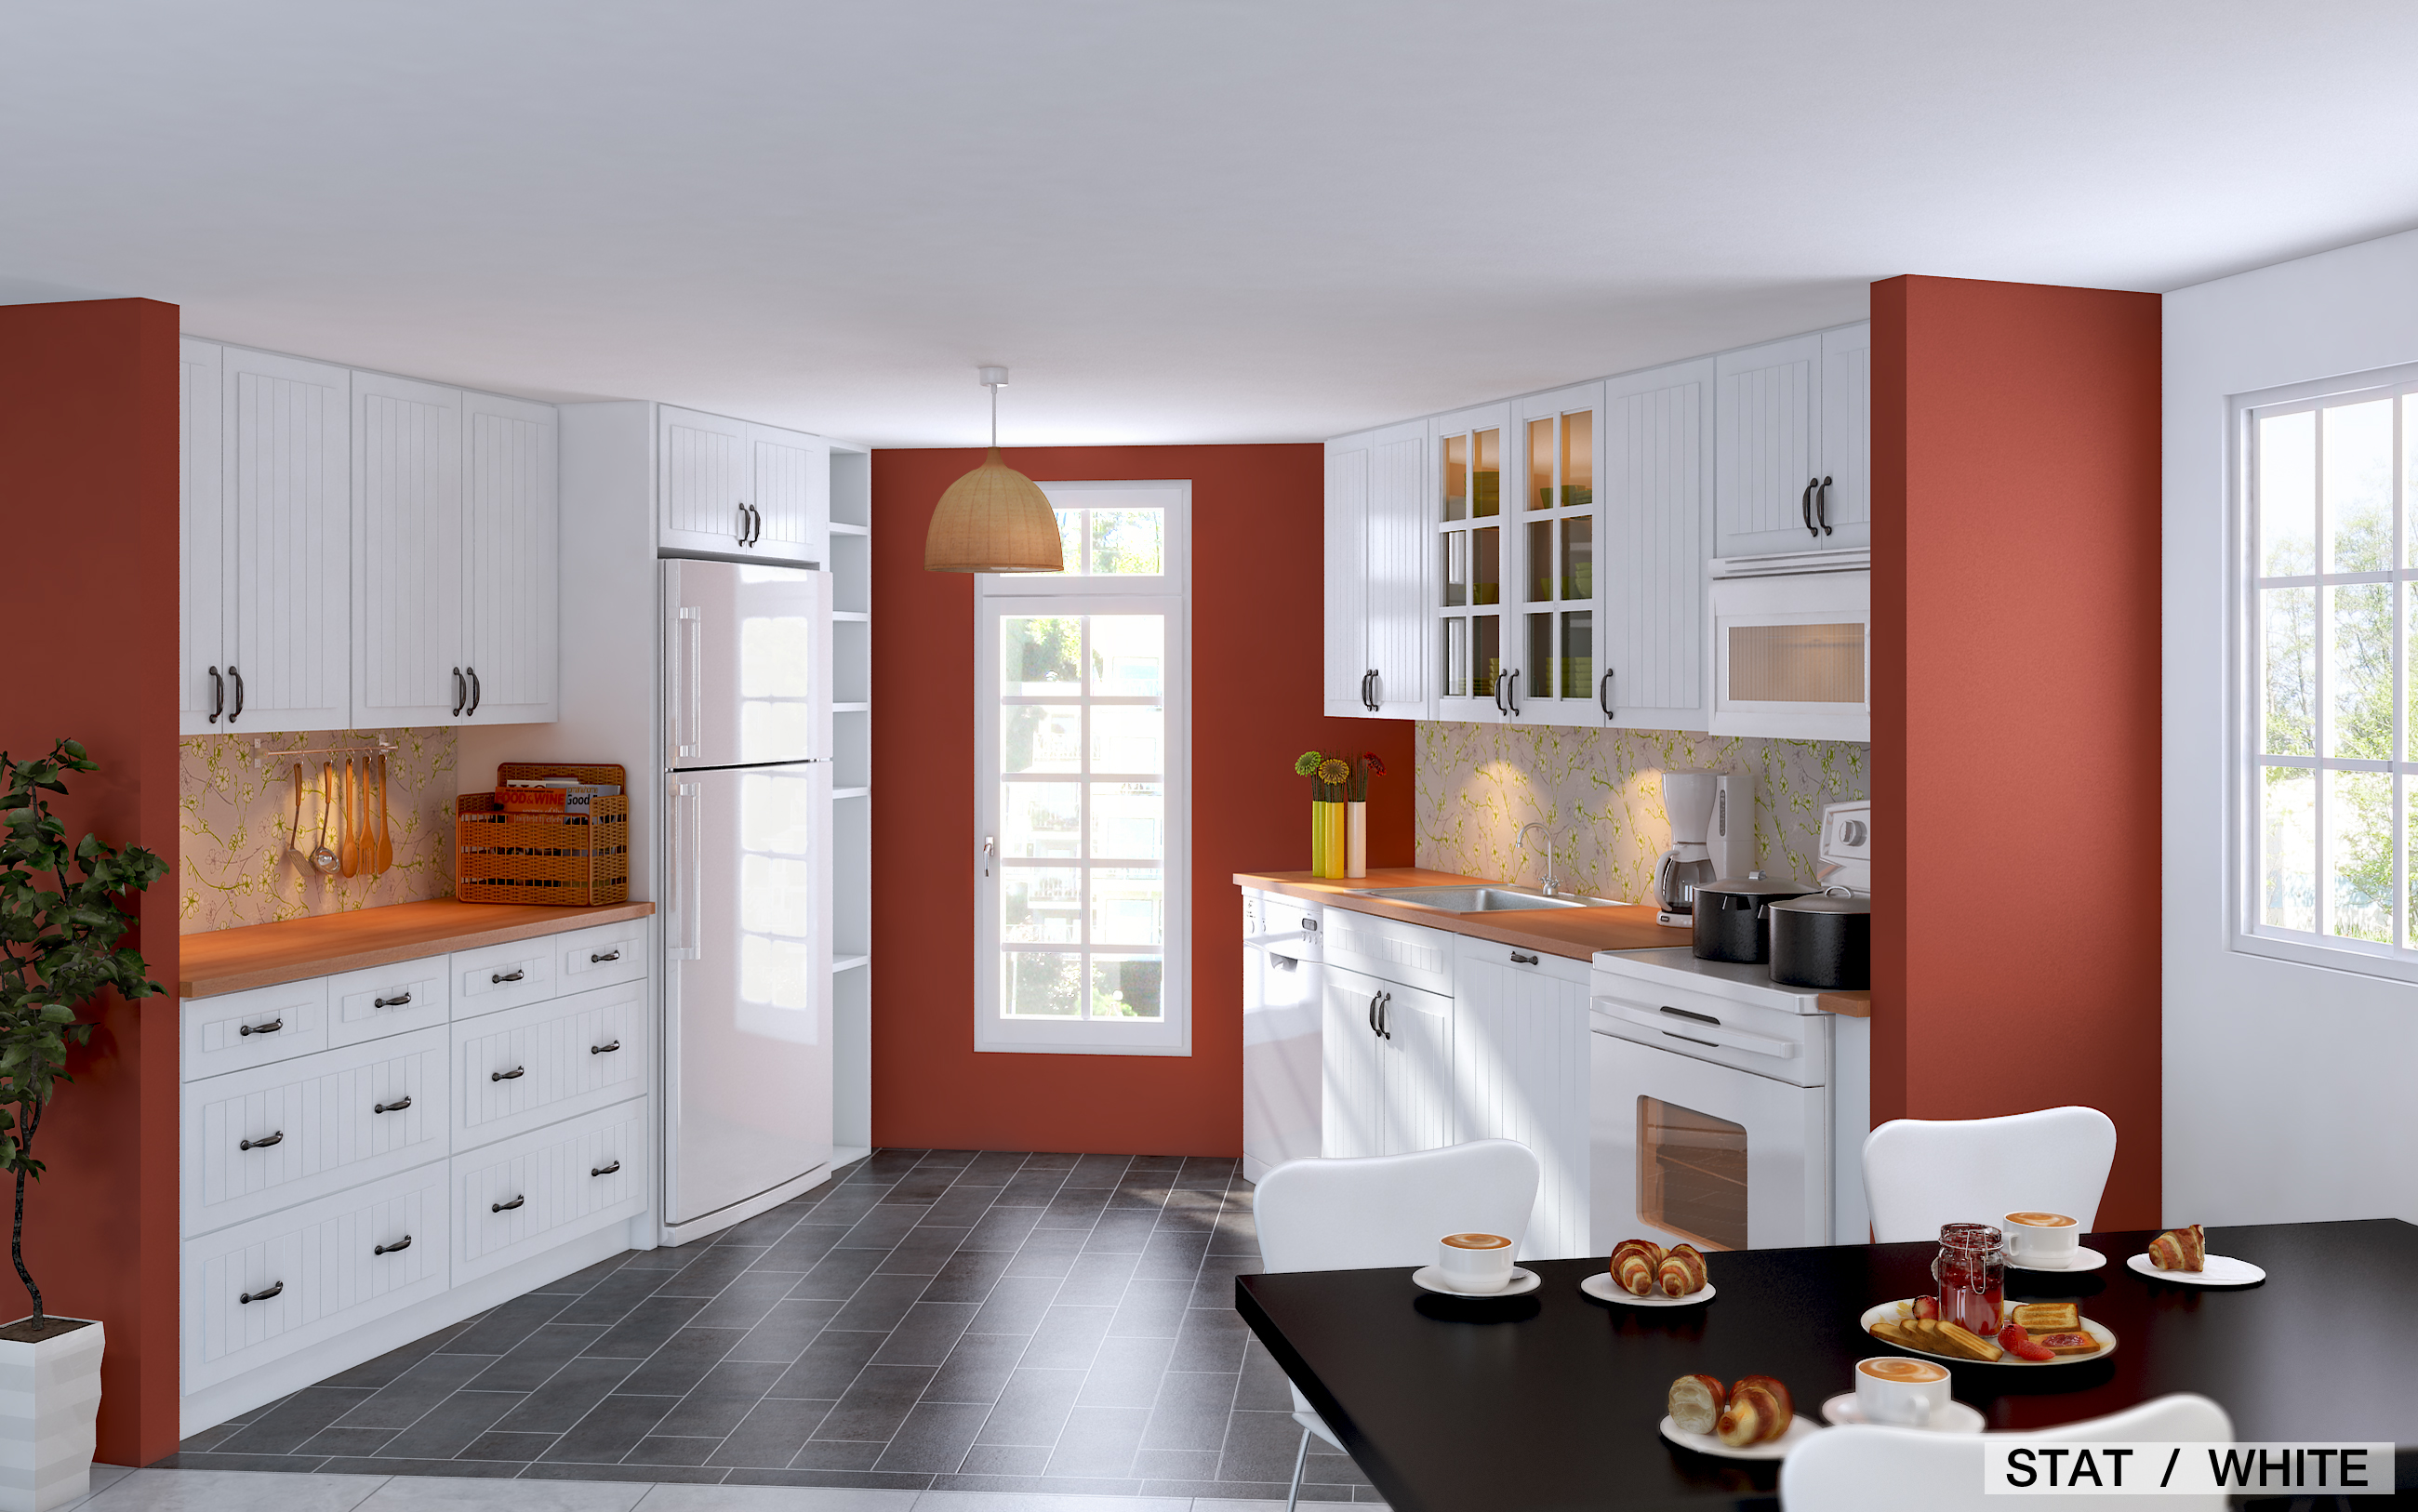 Ordinaire Inspired Kitchen Design